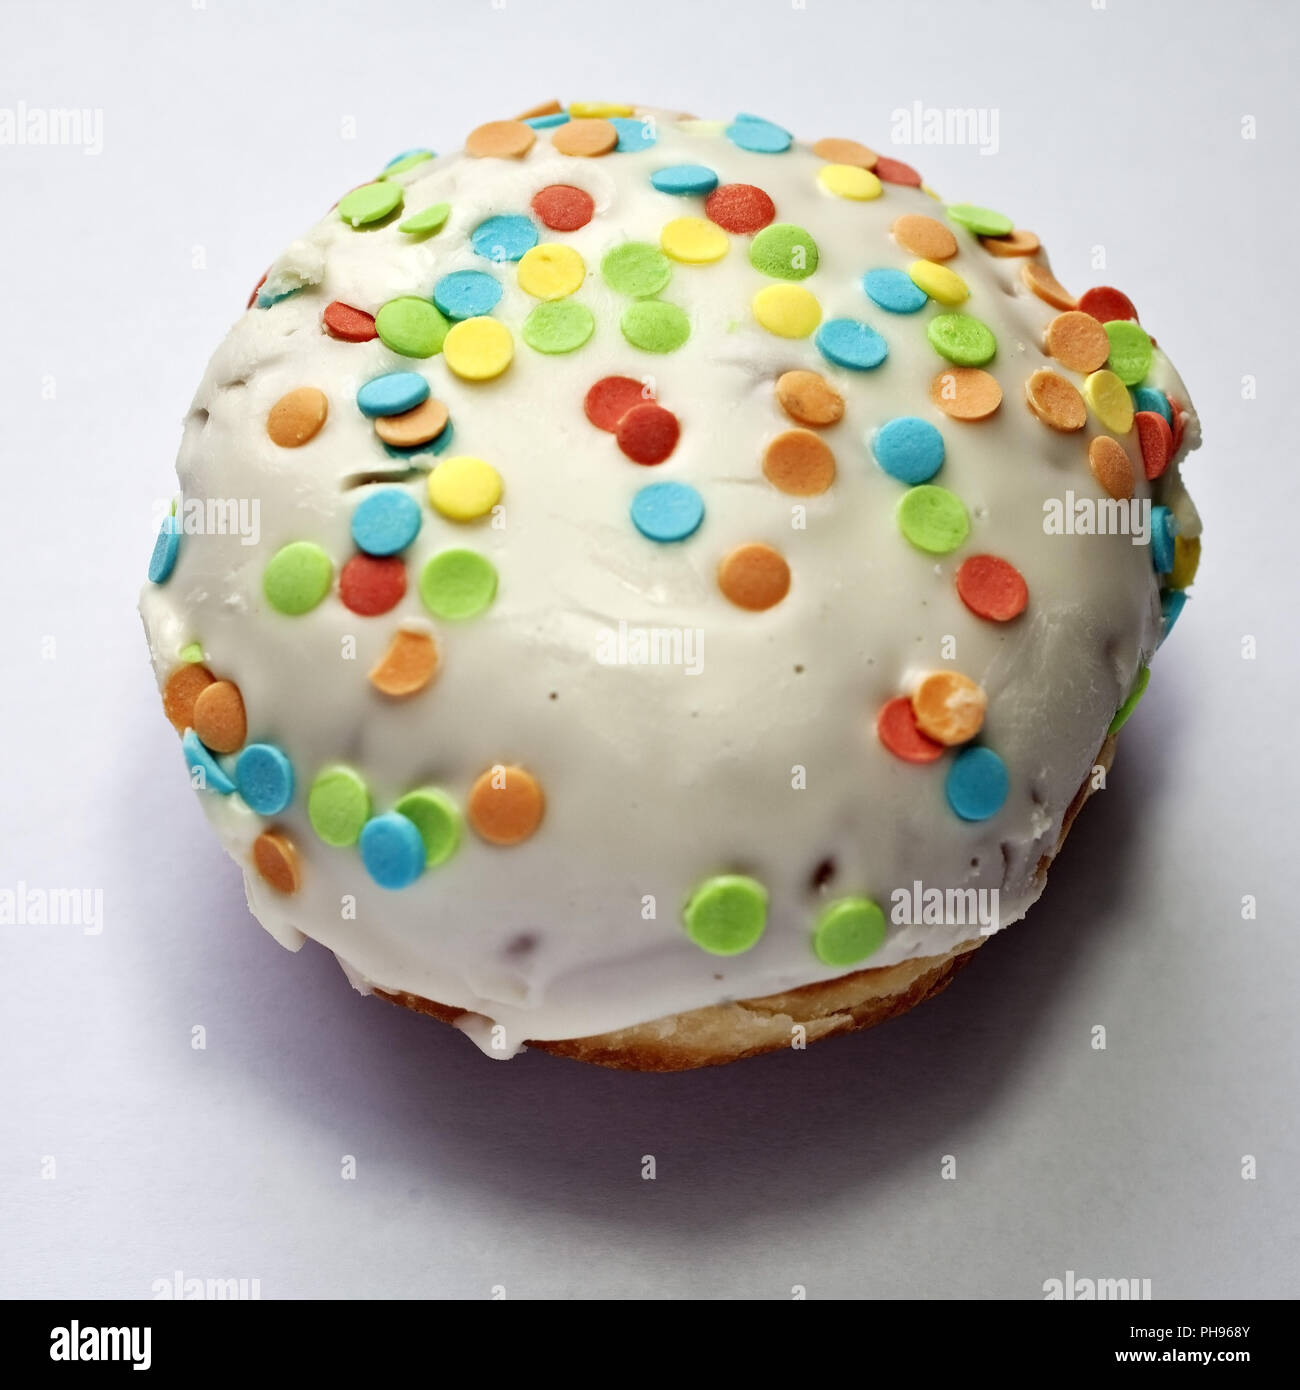 Carnival cake Berliner with simulated confetti - Stock Image